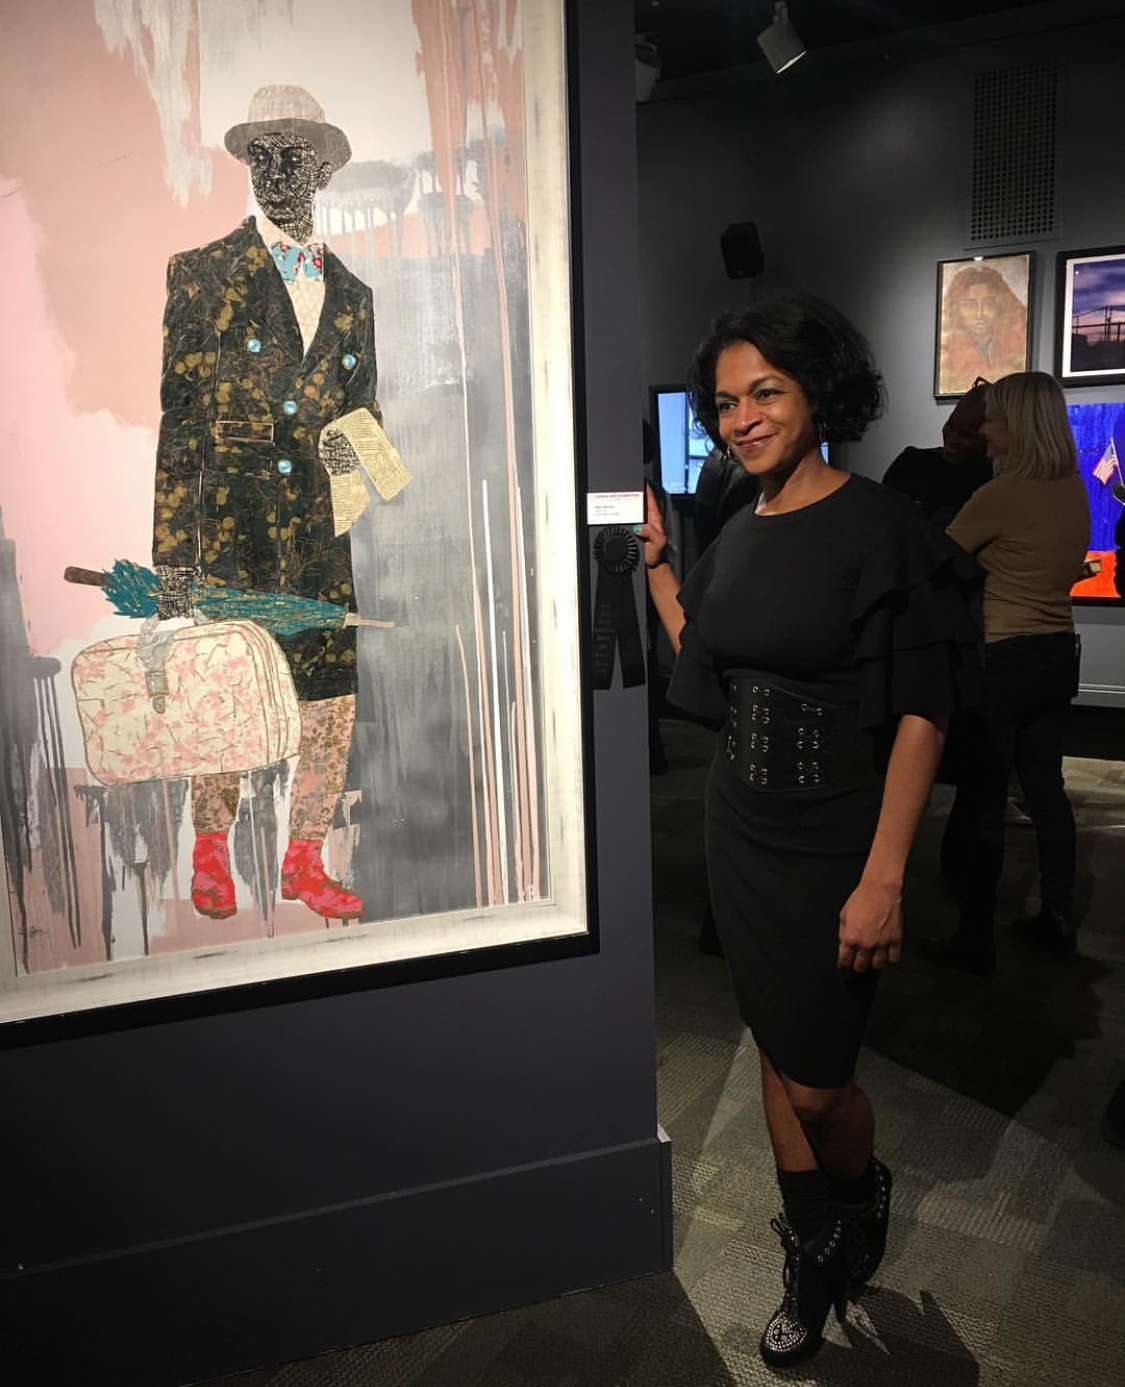 Reisha in front of her 2nd Place award winning 2018 work, Dear John.